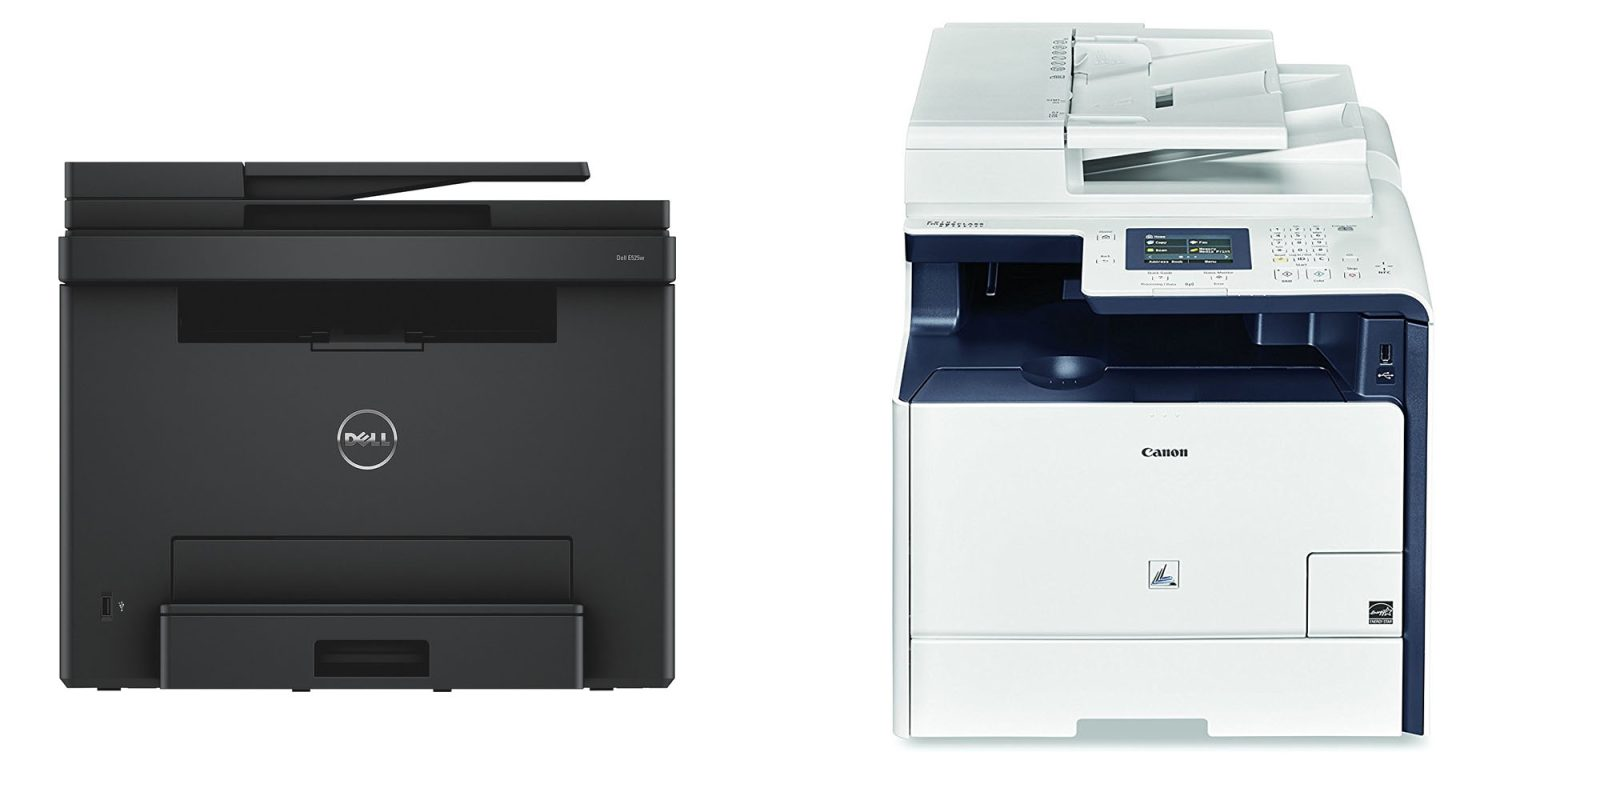 Dell And Canon Airprint All In One Color Laser Printers